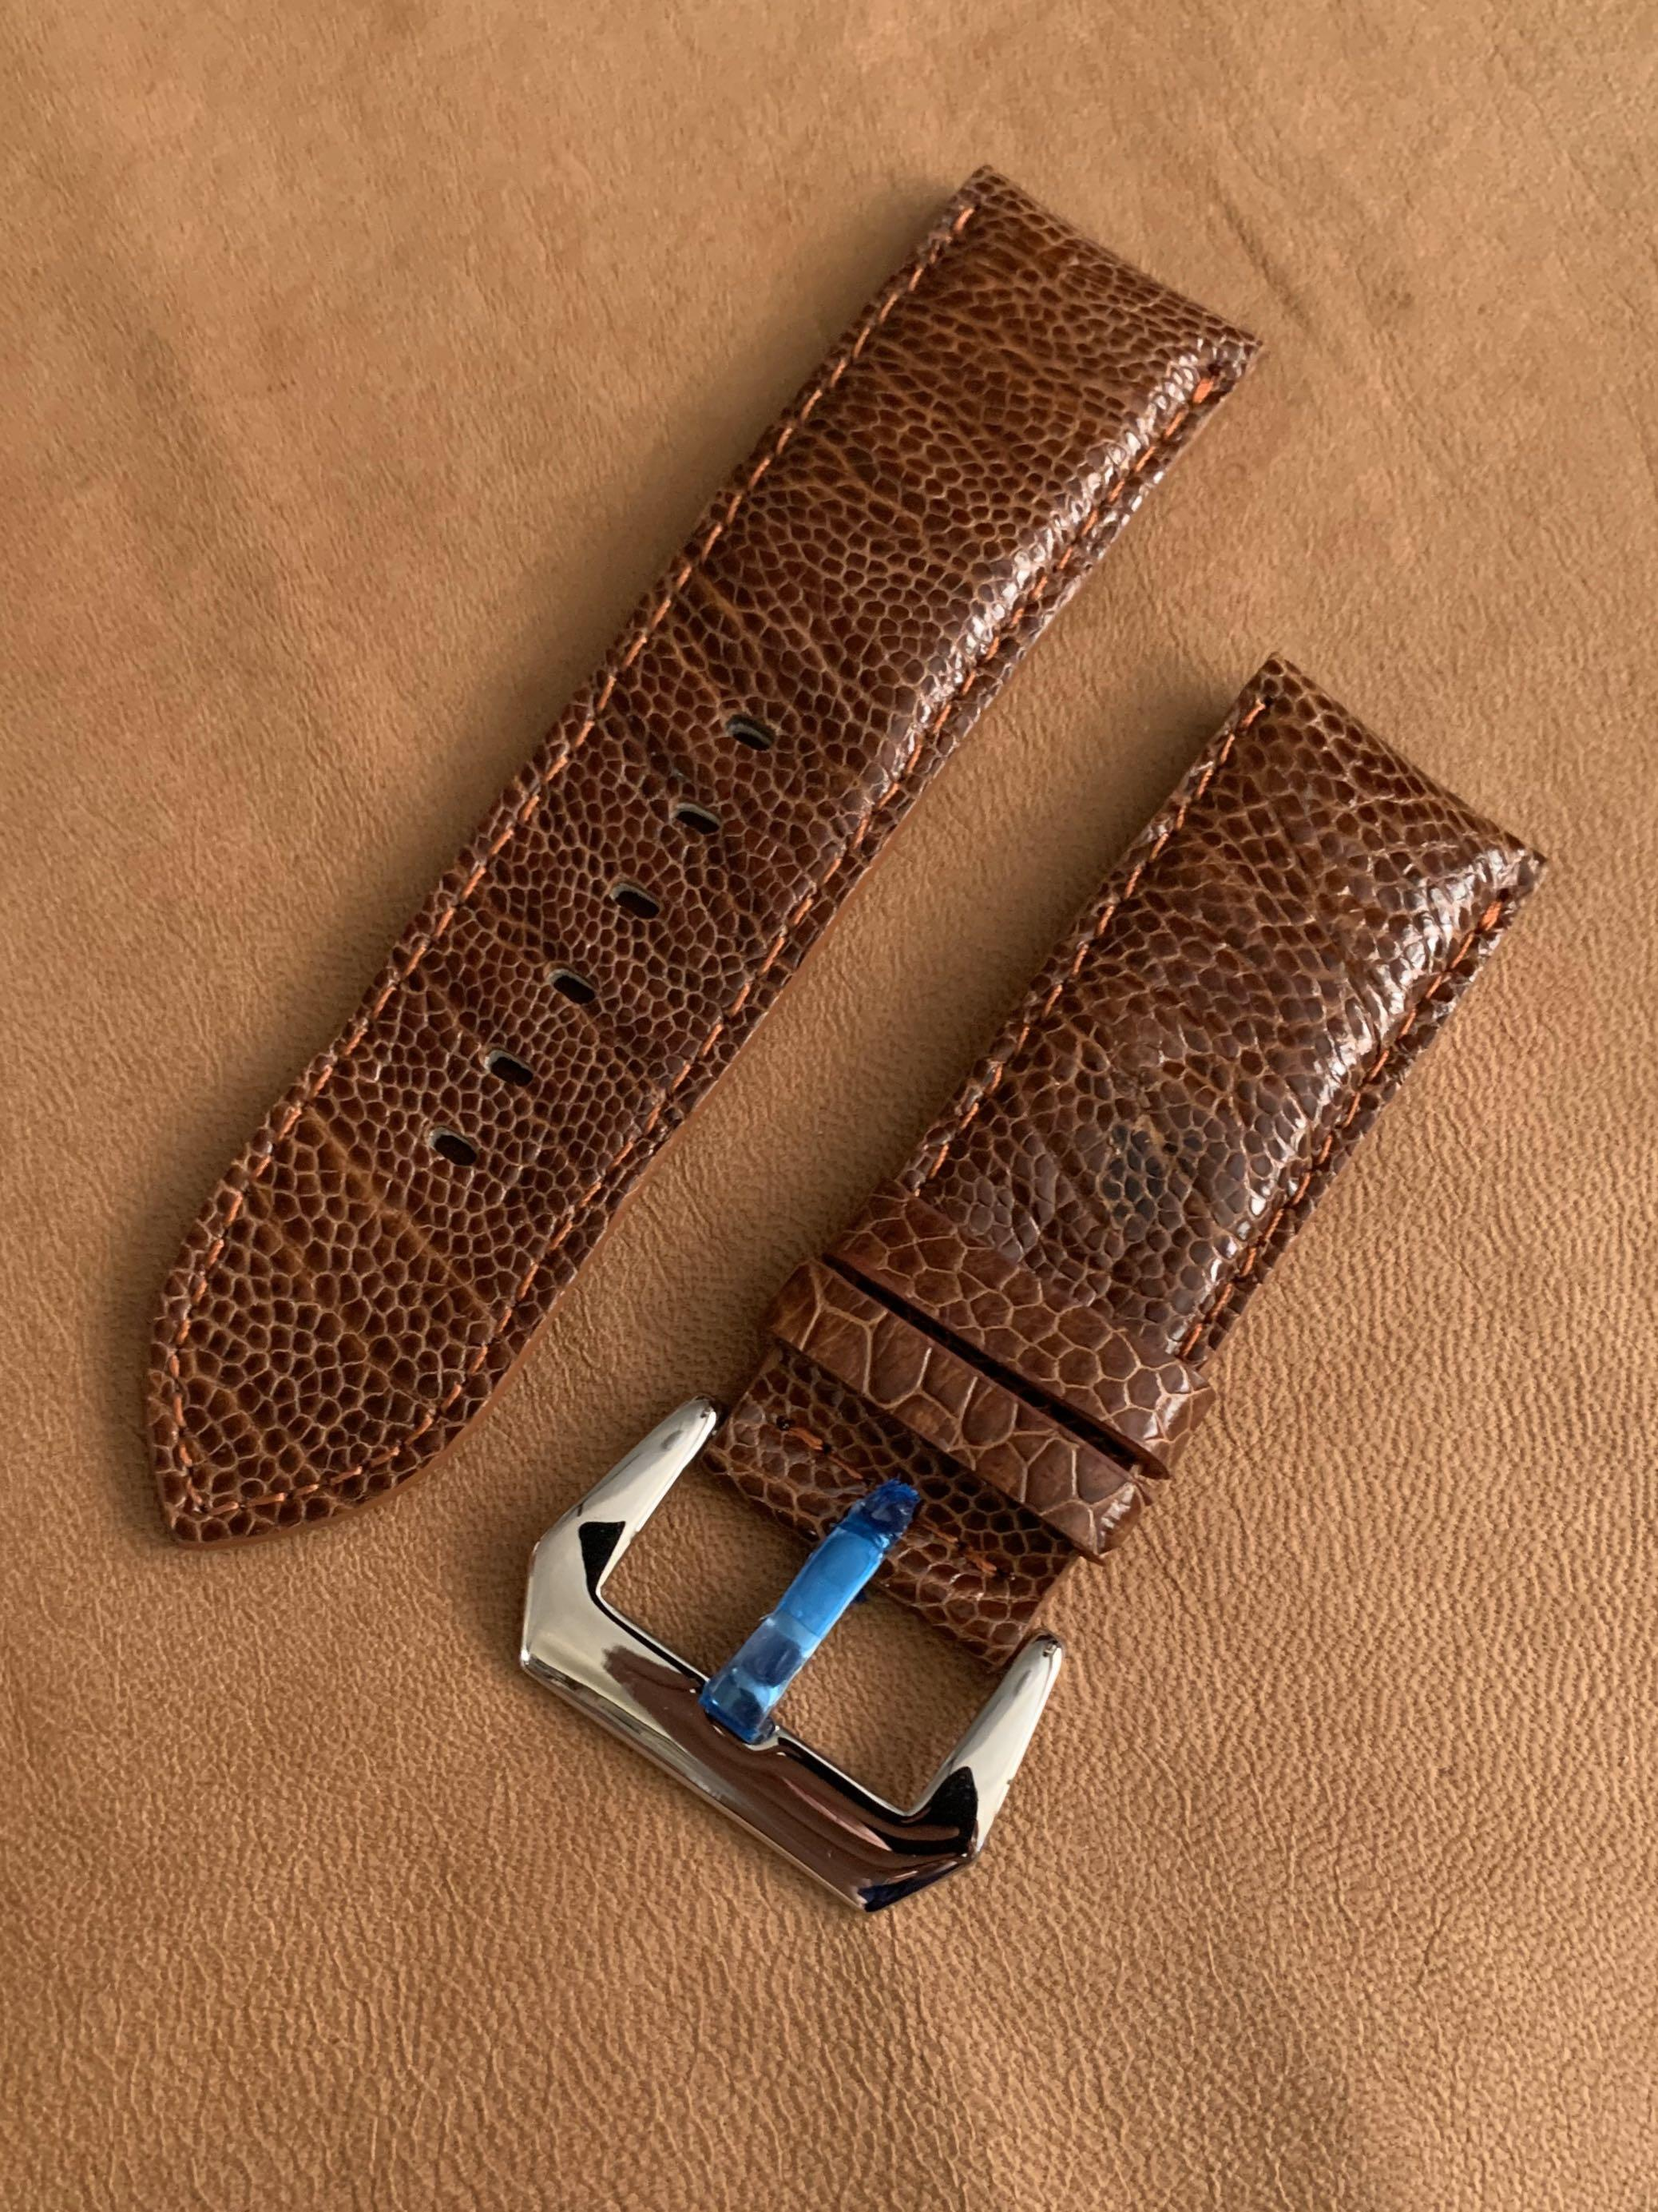 [DISCOUNTED] 26mm/26mm Cognac Brown Authentic Small Grains Ostrich Leg Leather Watch Strap - 26mm@lug/26mm@buckle   (Length- L:120mm, S:75mm) (only 1 piece like that 👍🏻😊- once sold, no more) - LAST SUCH STRAP - CB SALE!! 😊